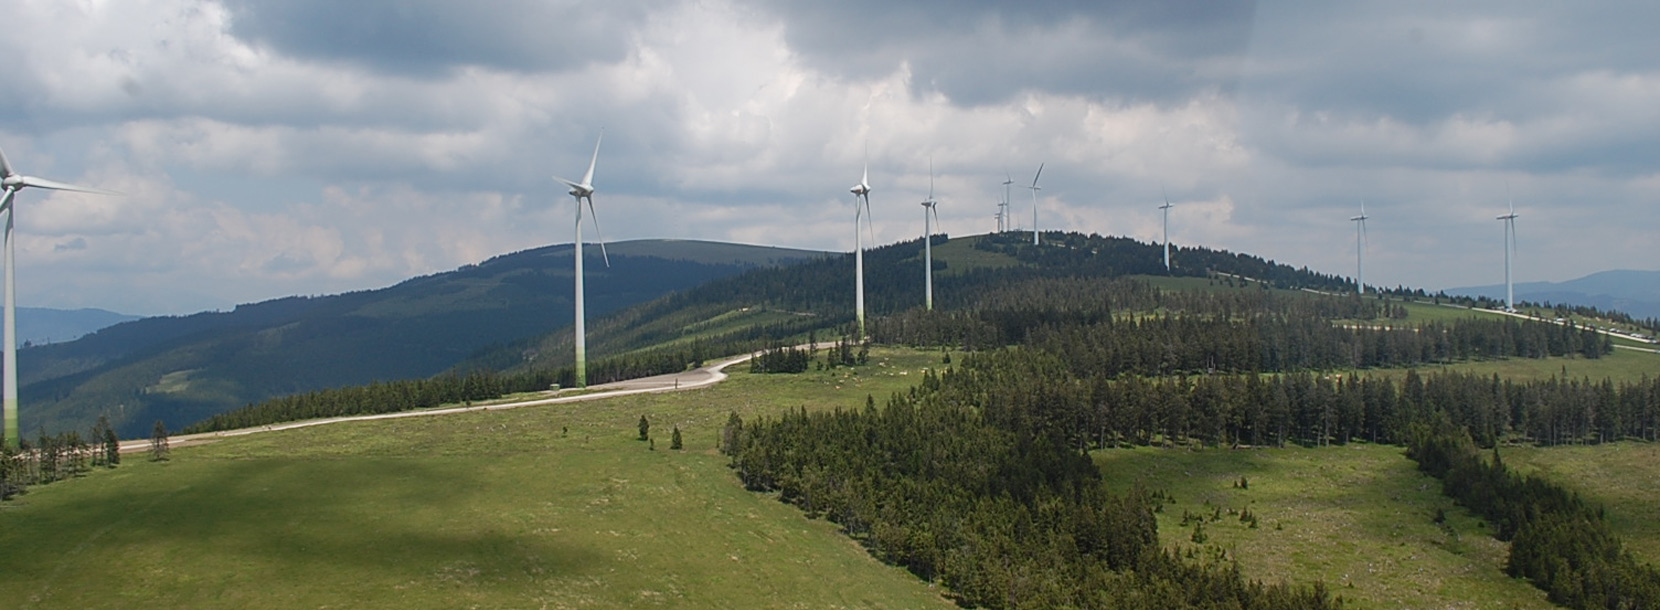 Windpark Steinriegel mit Windkraftanlagen